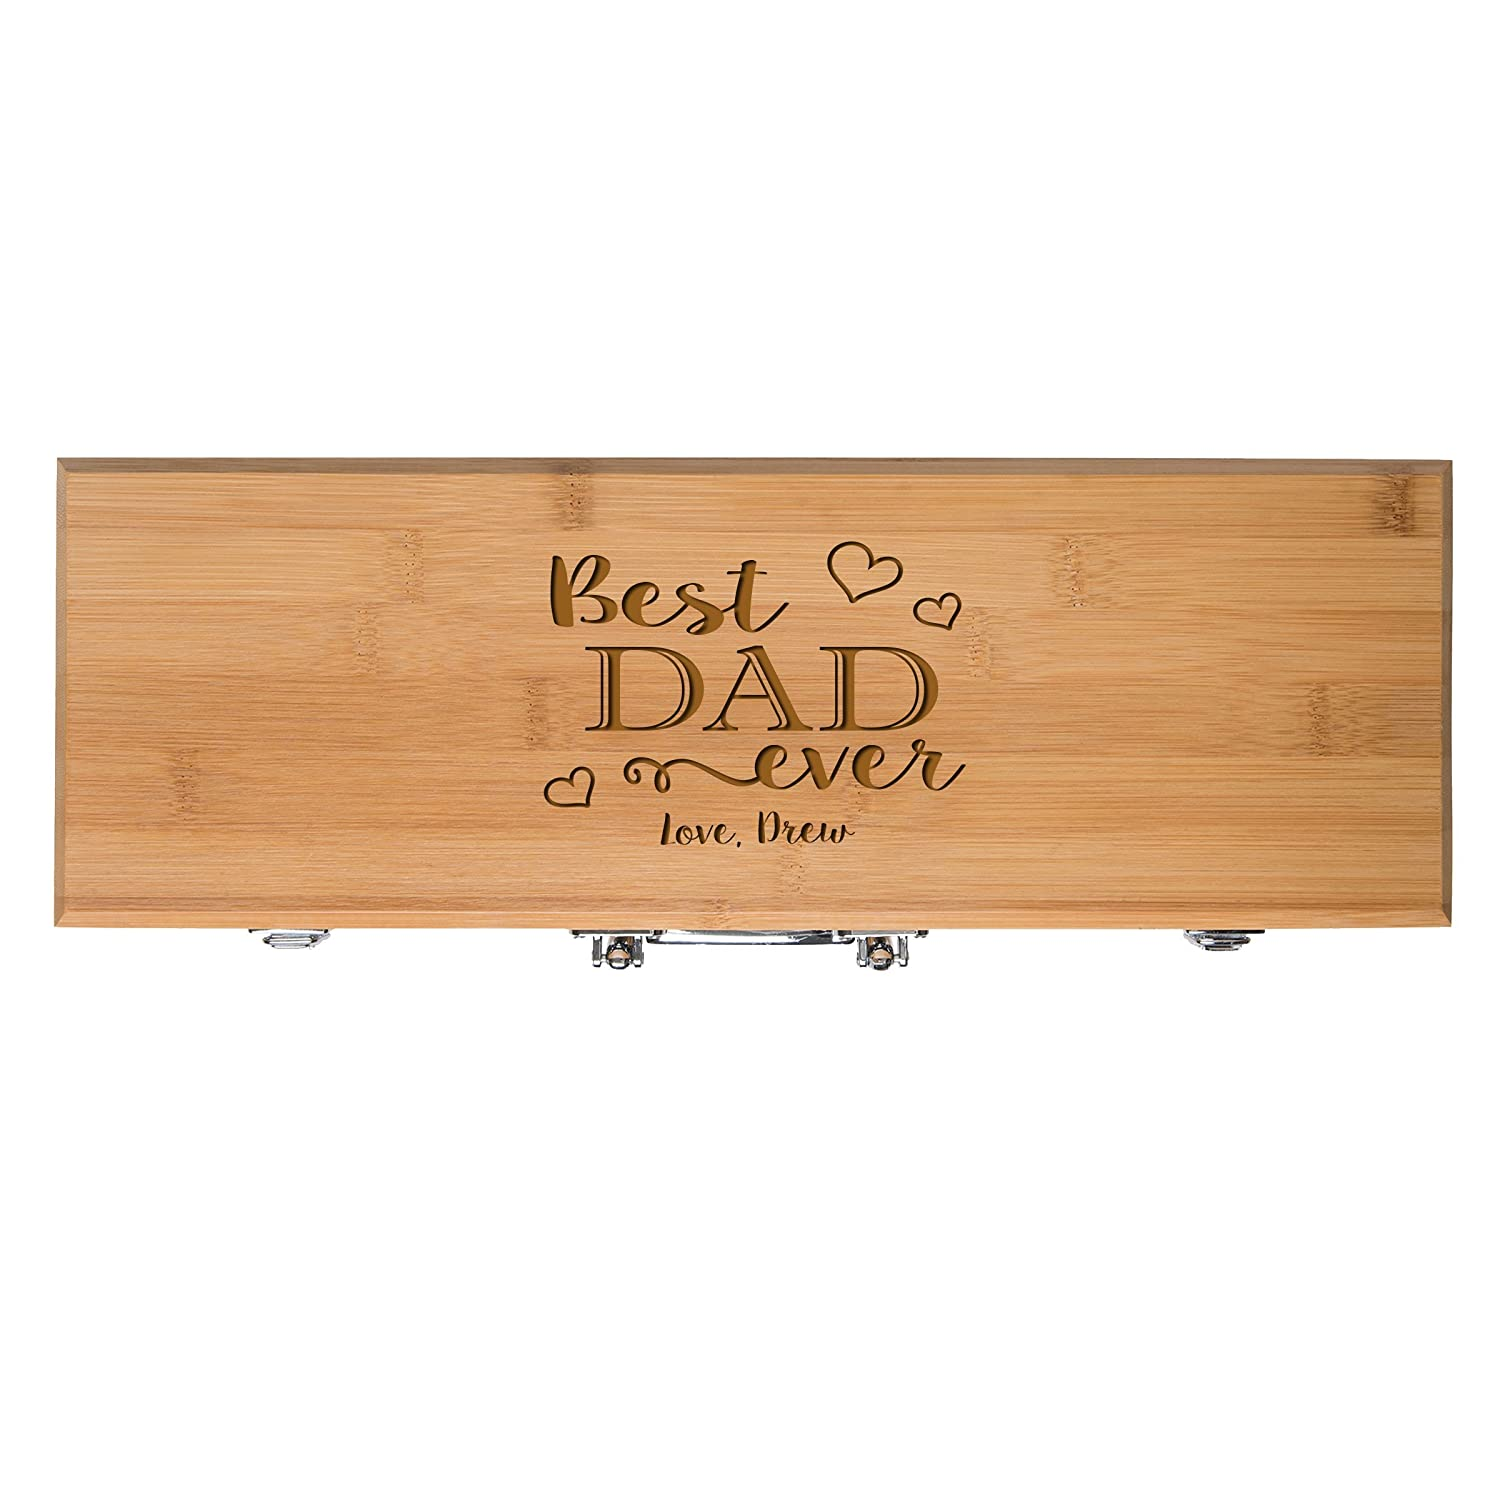 Personalized For DadギフトカスタムEngraved Best Dad Ever 3個入りバーベキューギフトセットforアウトドアグリル 19 5/8